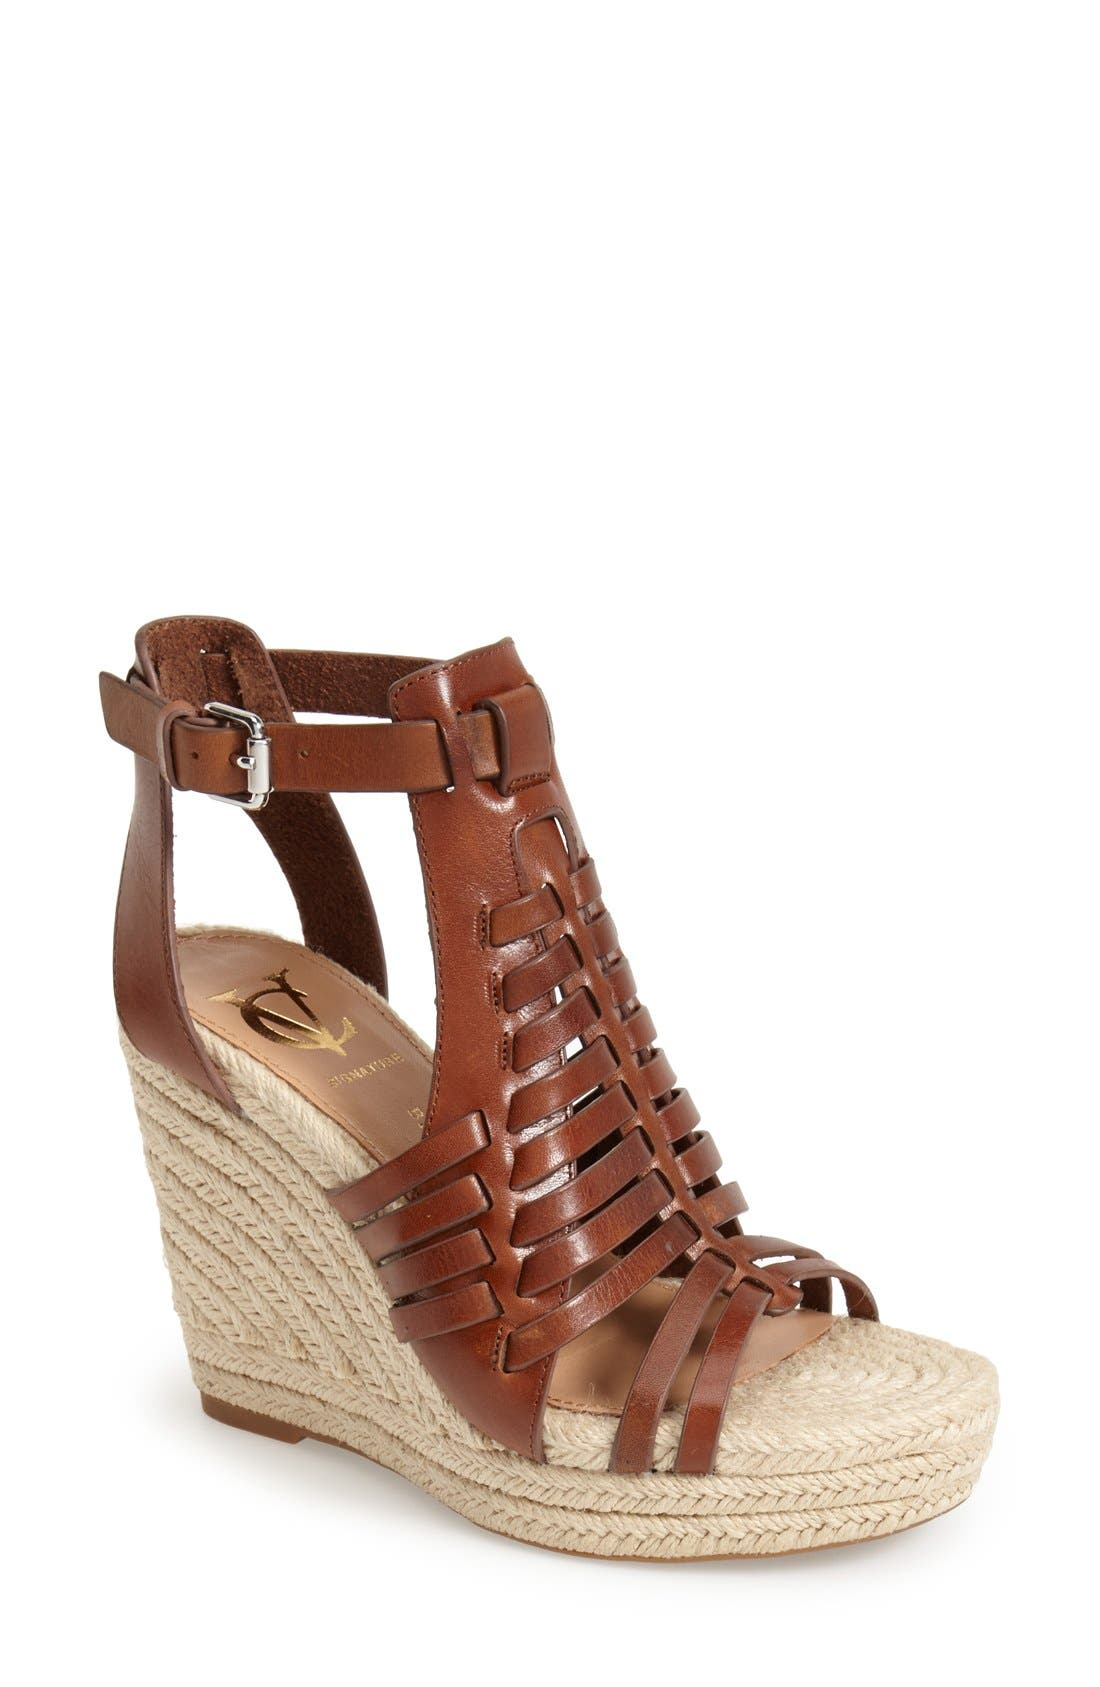 Main Image - VC Signature 'Danessa' Wedge Sandal (Women)